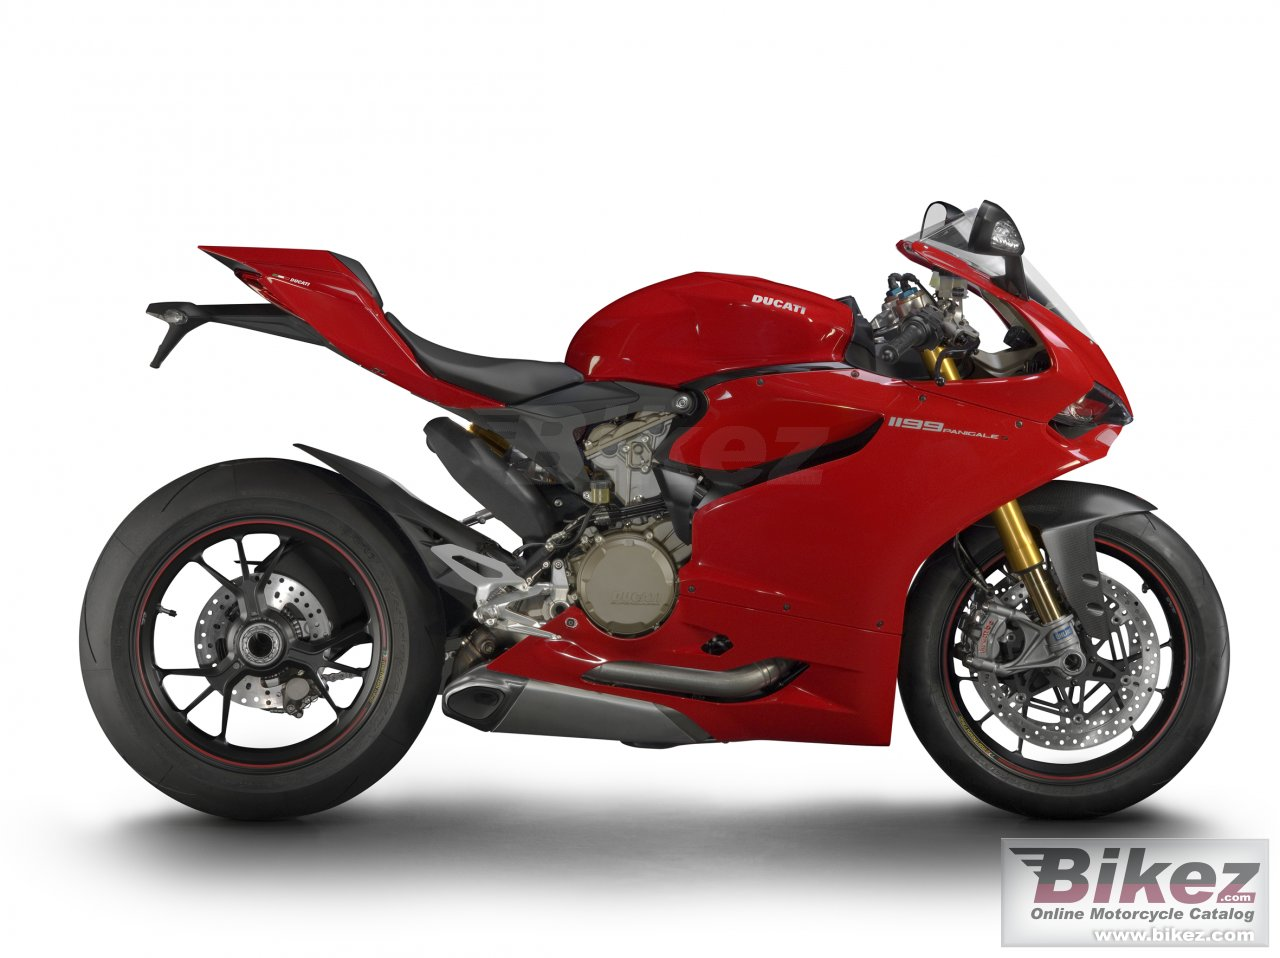 Big Ducati 1199 panigale s picture and wallpaper from Bikez.com